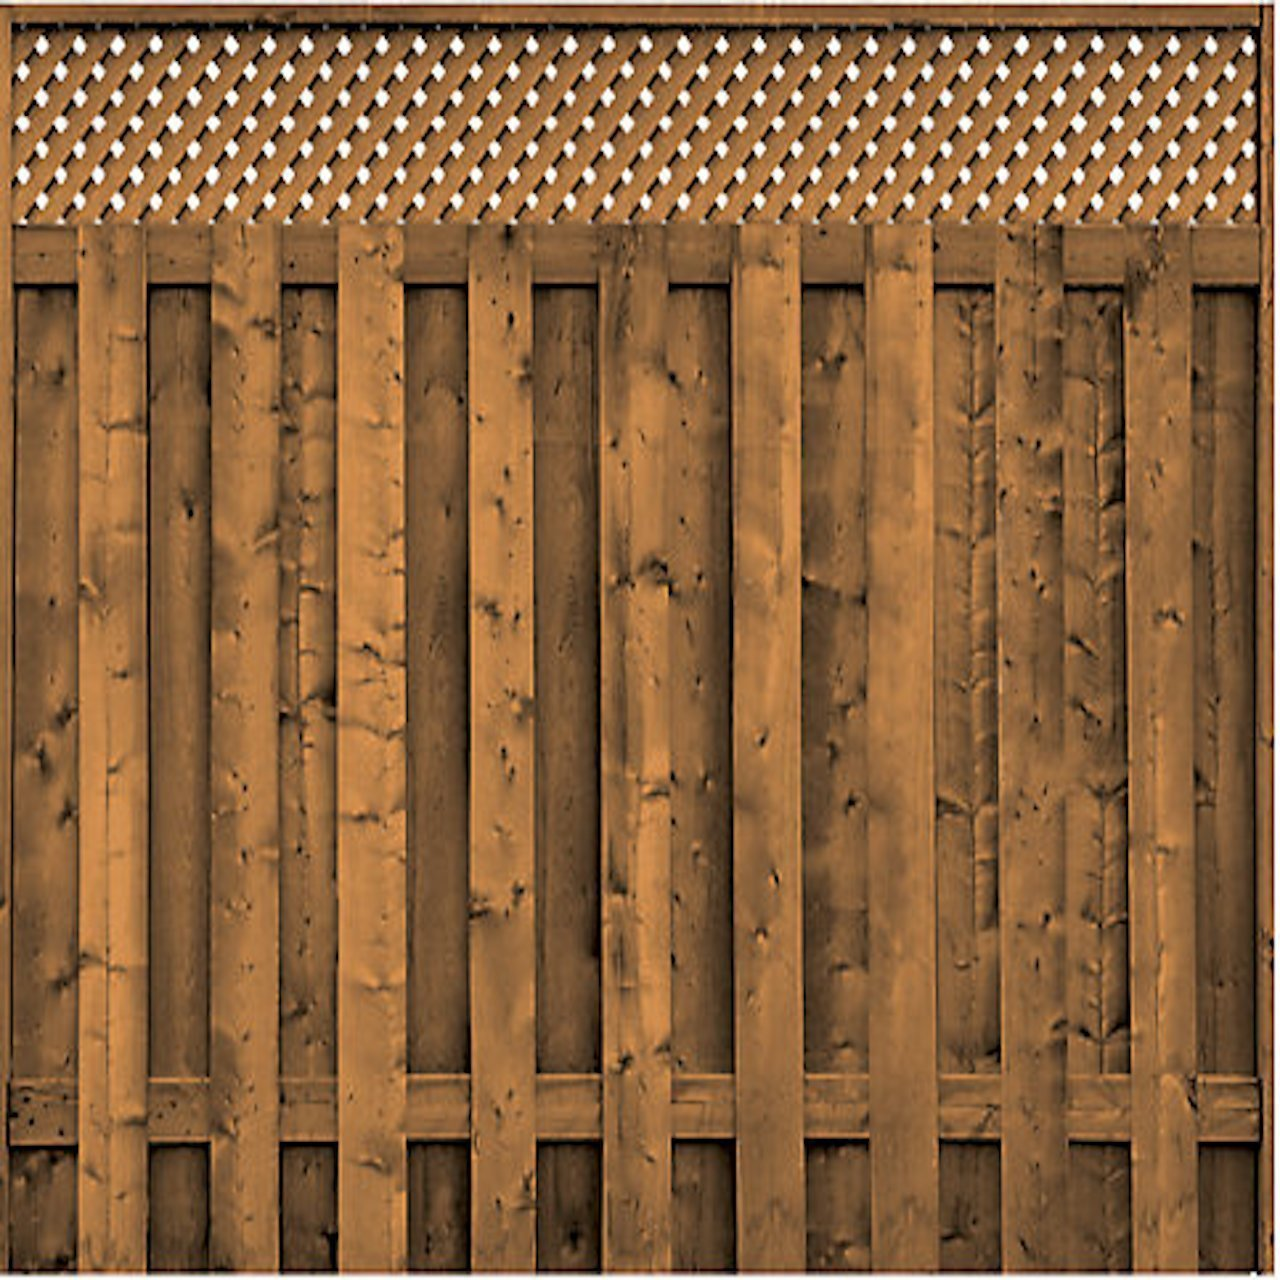 DecoMax Fences and Decks - Fences Gallery - 002